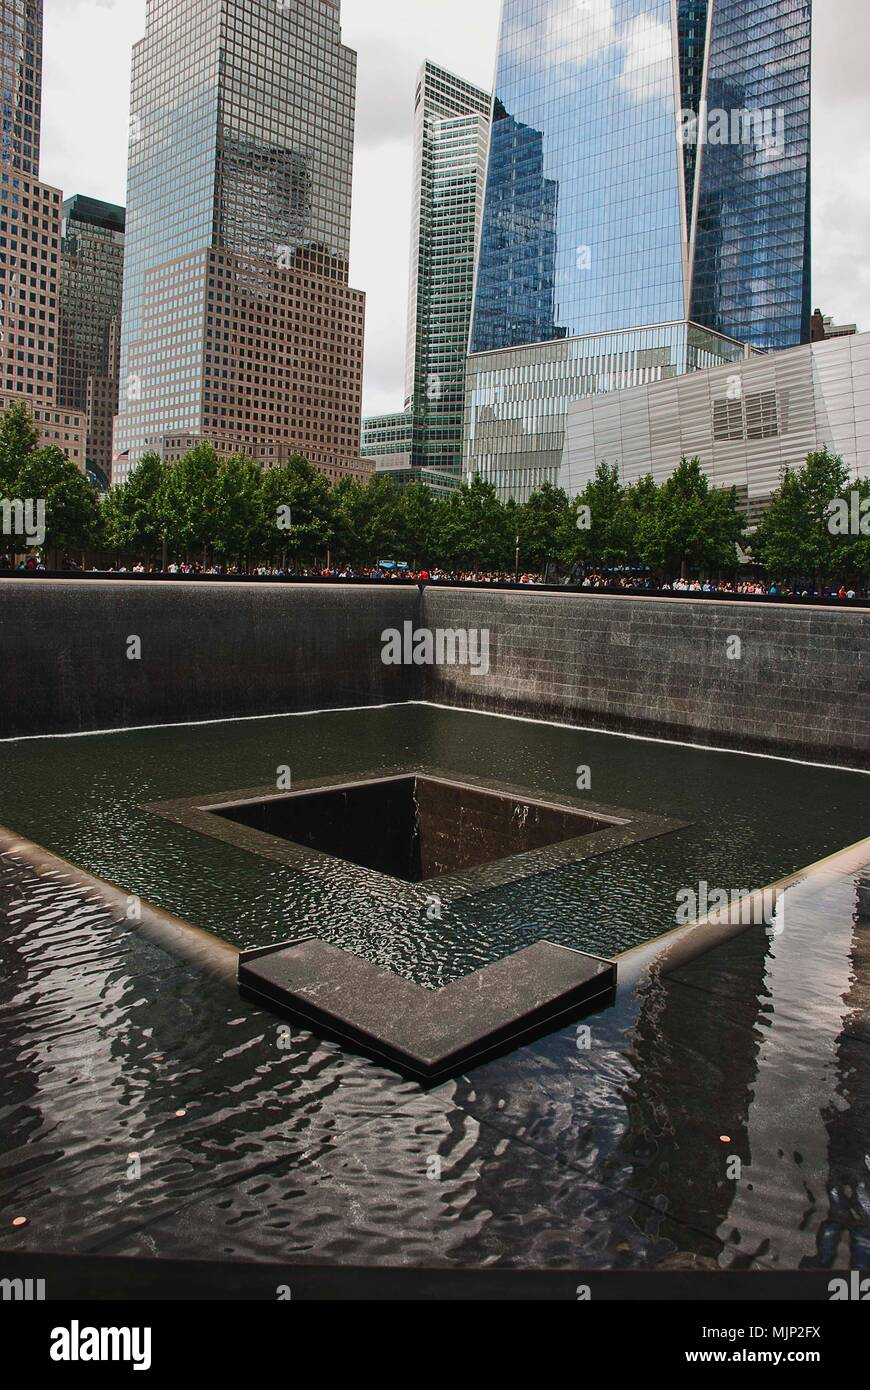 The footprint of one of the World Trade Center towers that were destroyed on 9/11 in Lower Manhattan Stock Photo